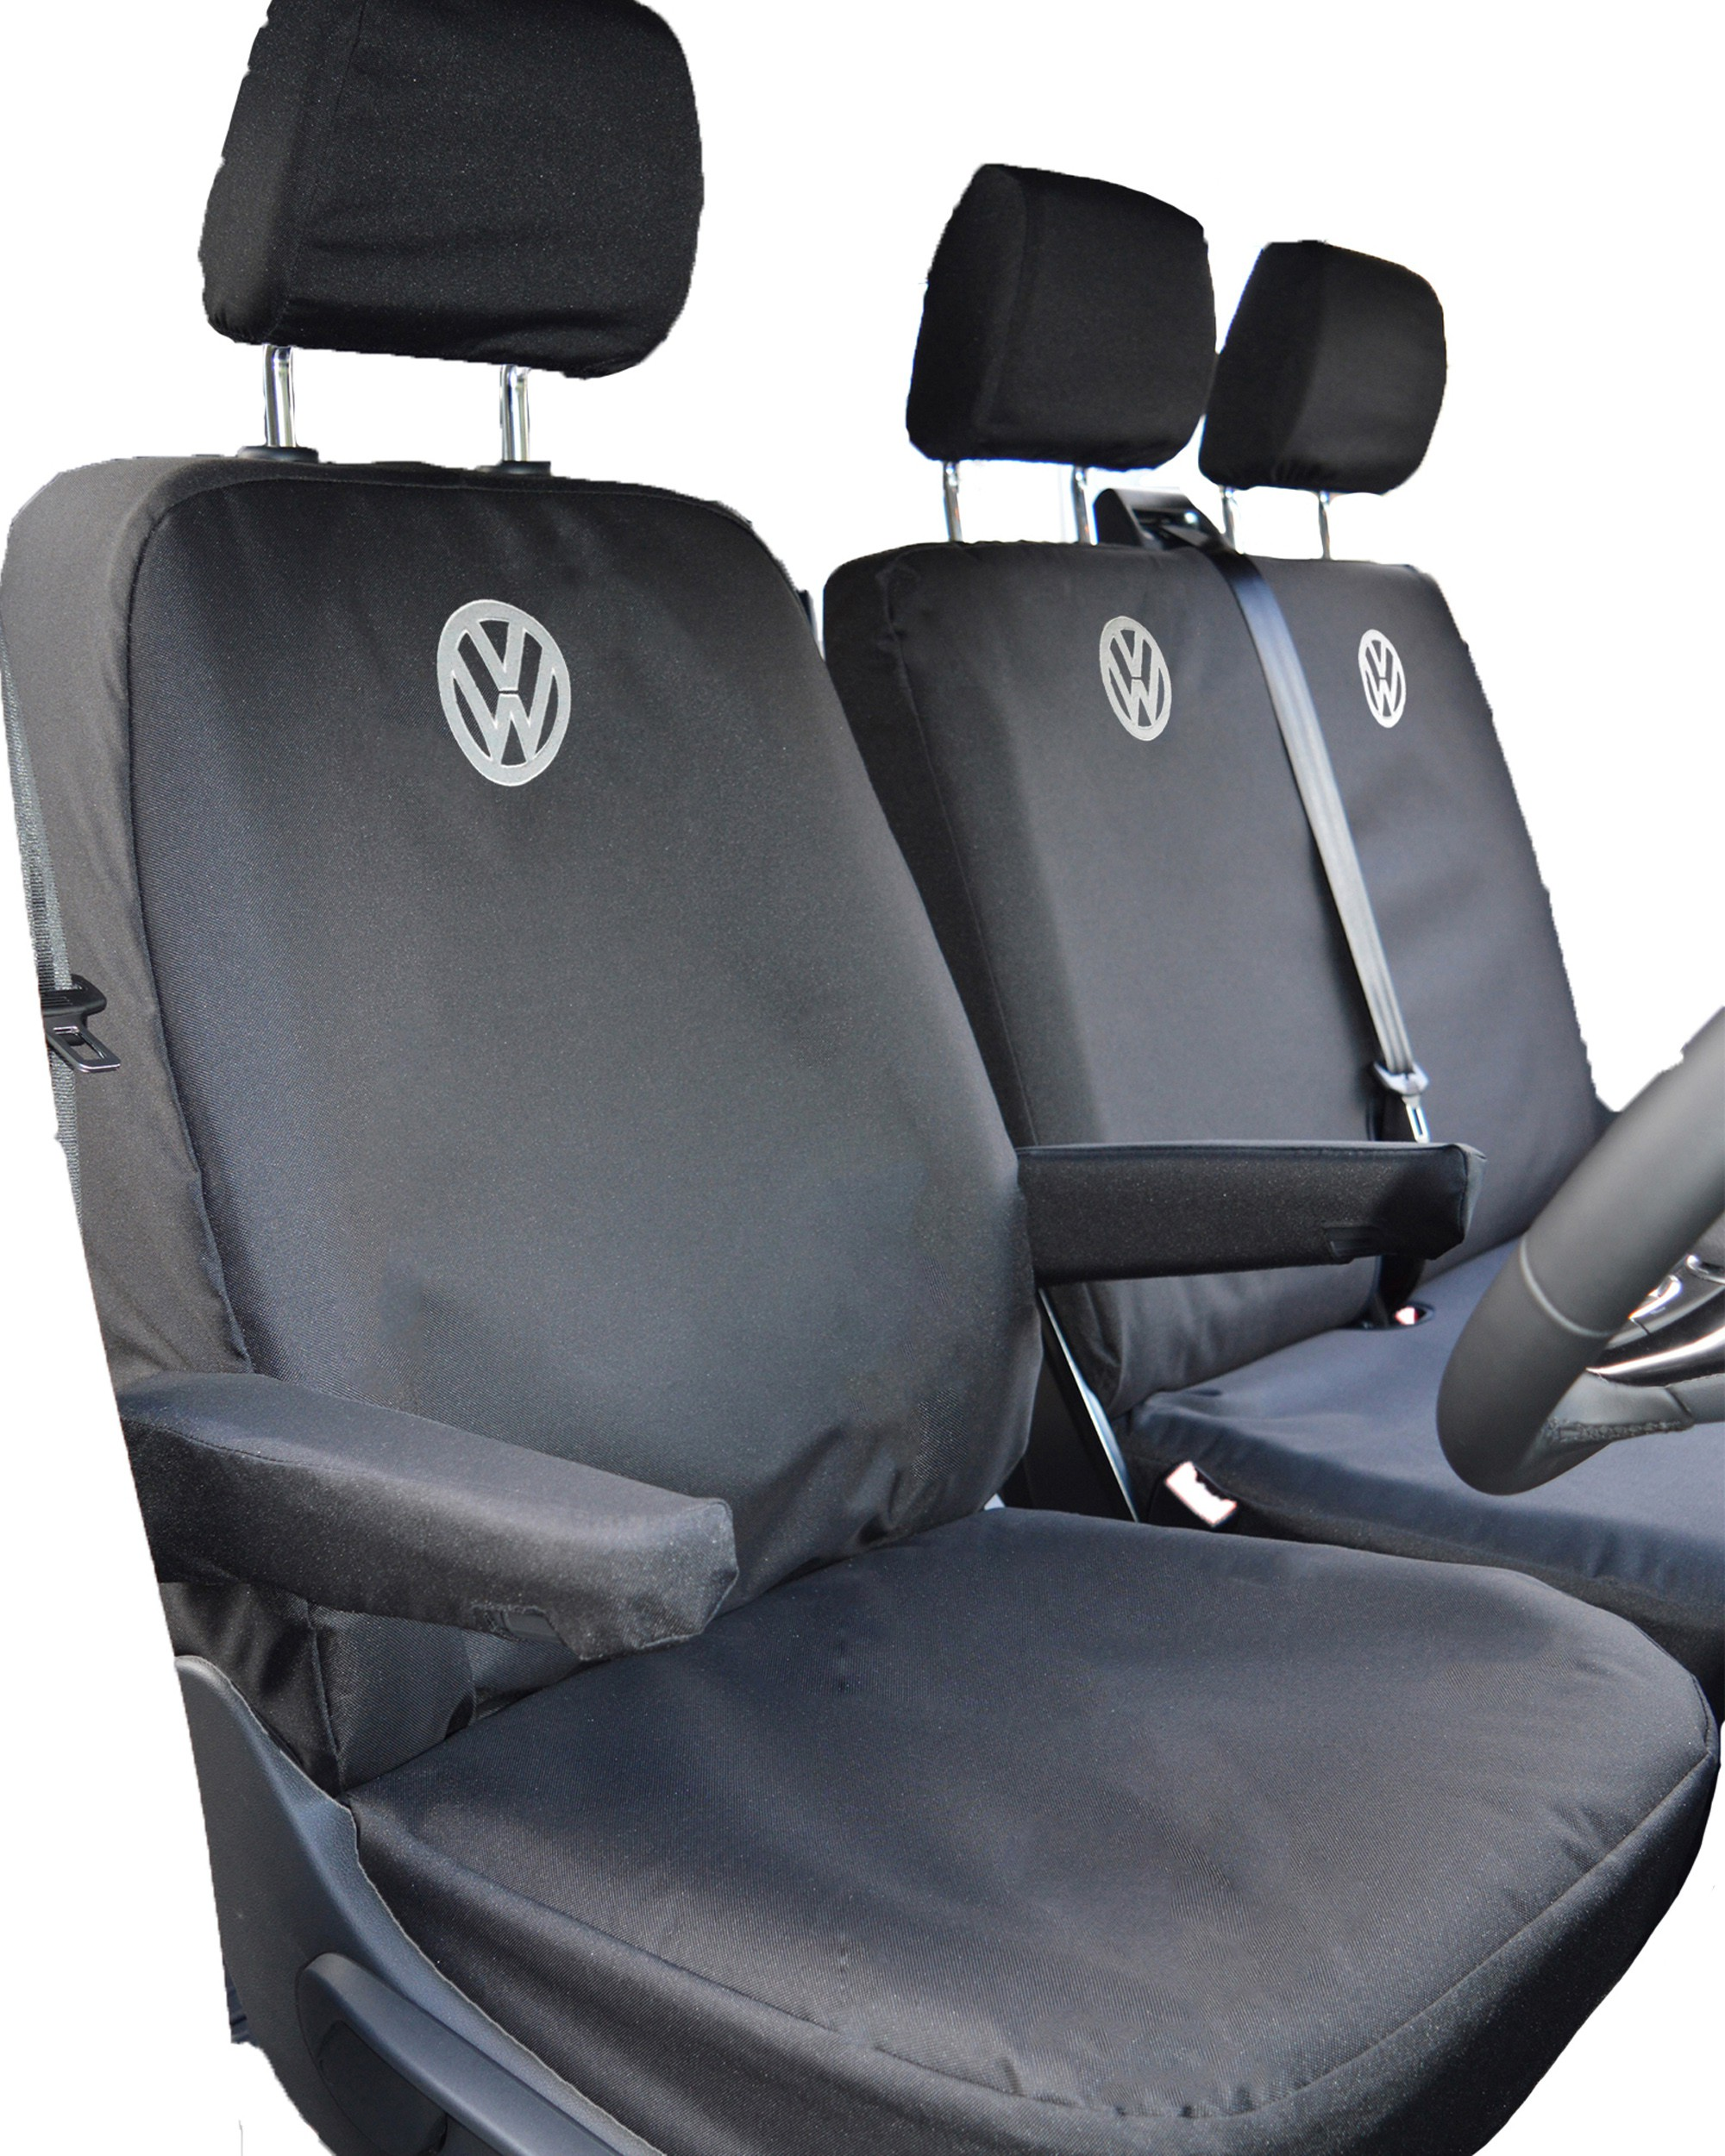 VW Transporter T5  extra heavy duty seat covers